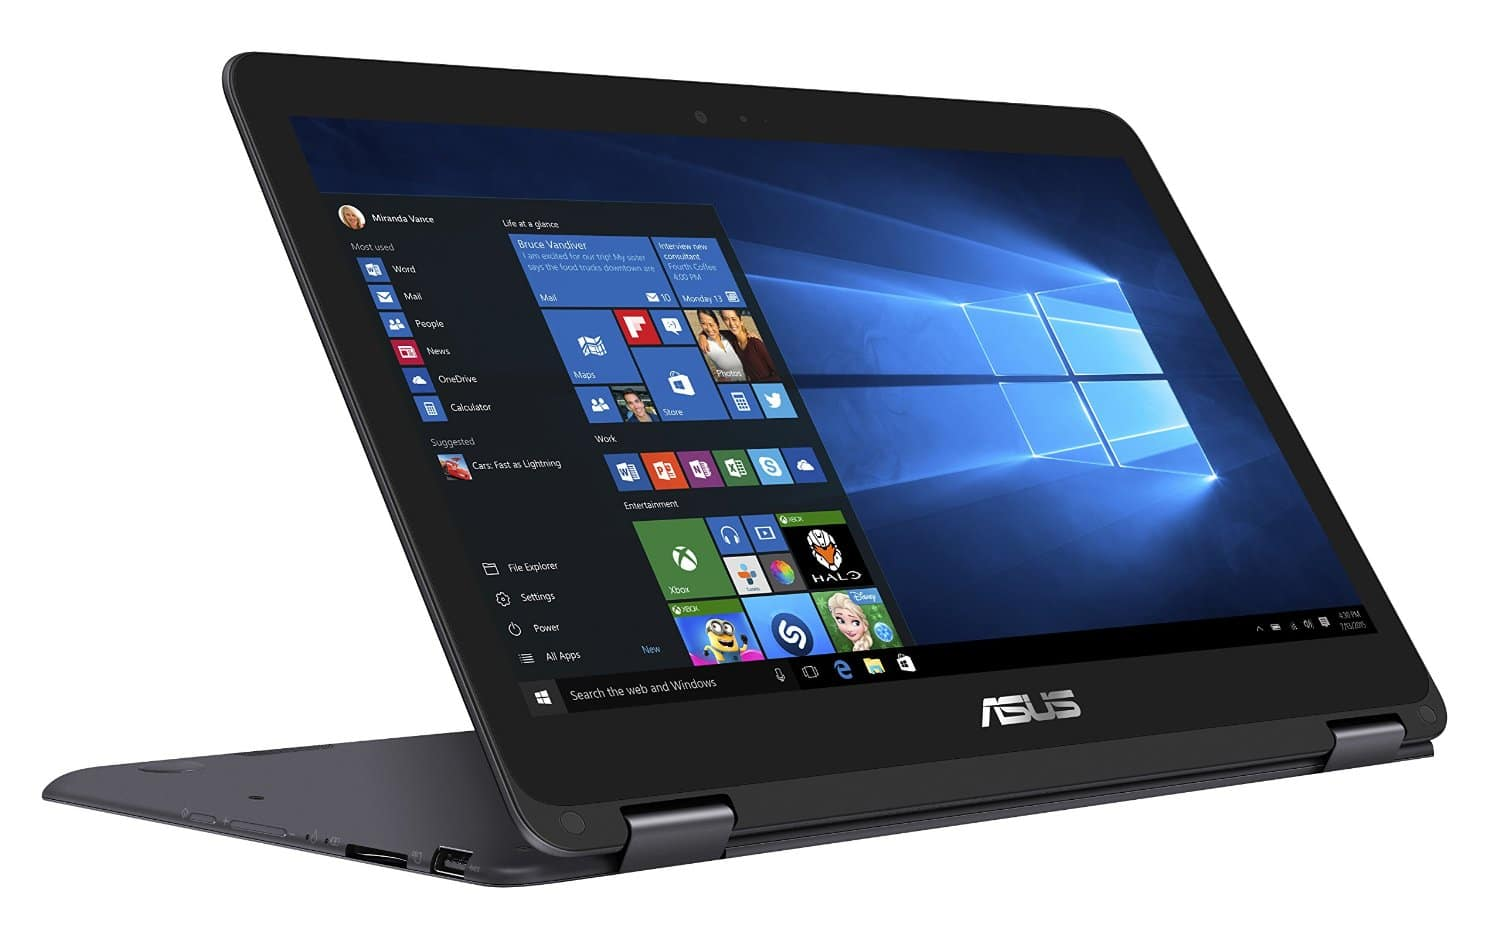 Tablette Tactile 13 Pouces Asus Zenbook Ux360ca C4017t Ultrabook 13 Pouces Tactile Tablette